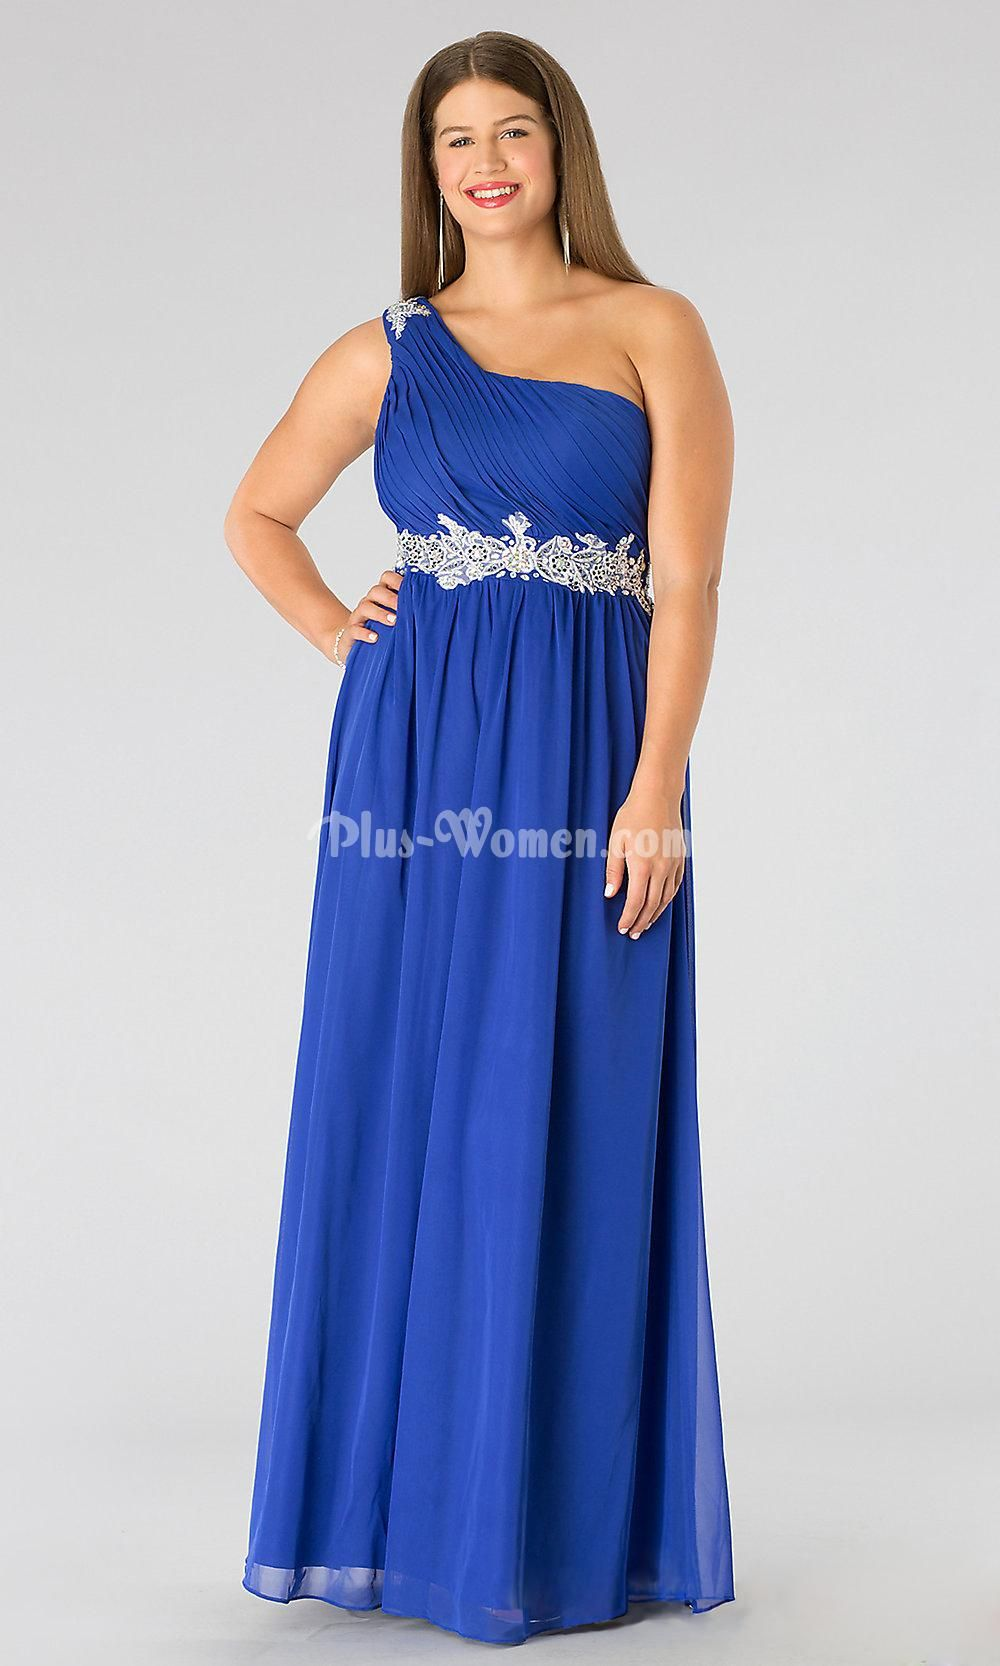 One shoulder ruched royal blue chiffon plus size formal prom dress